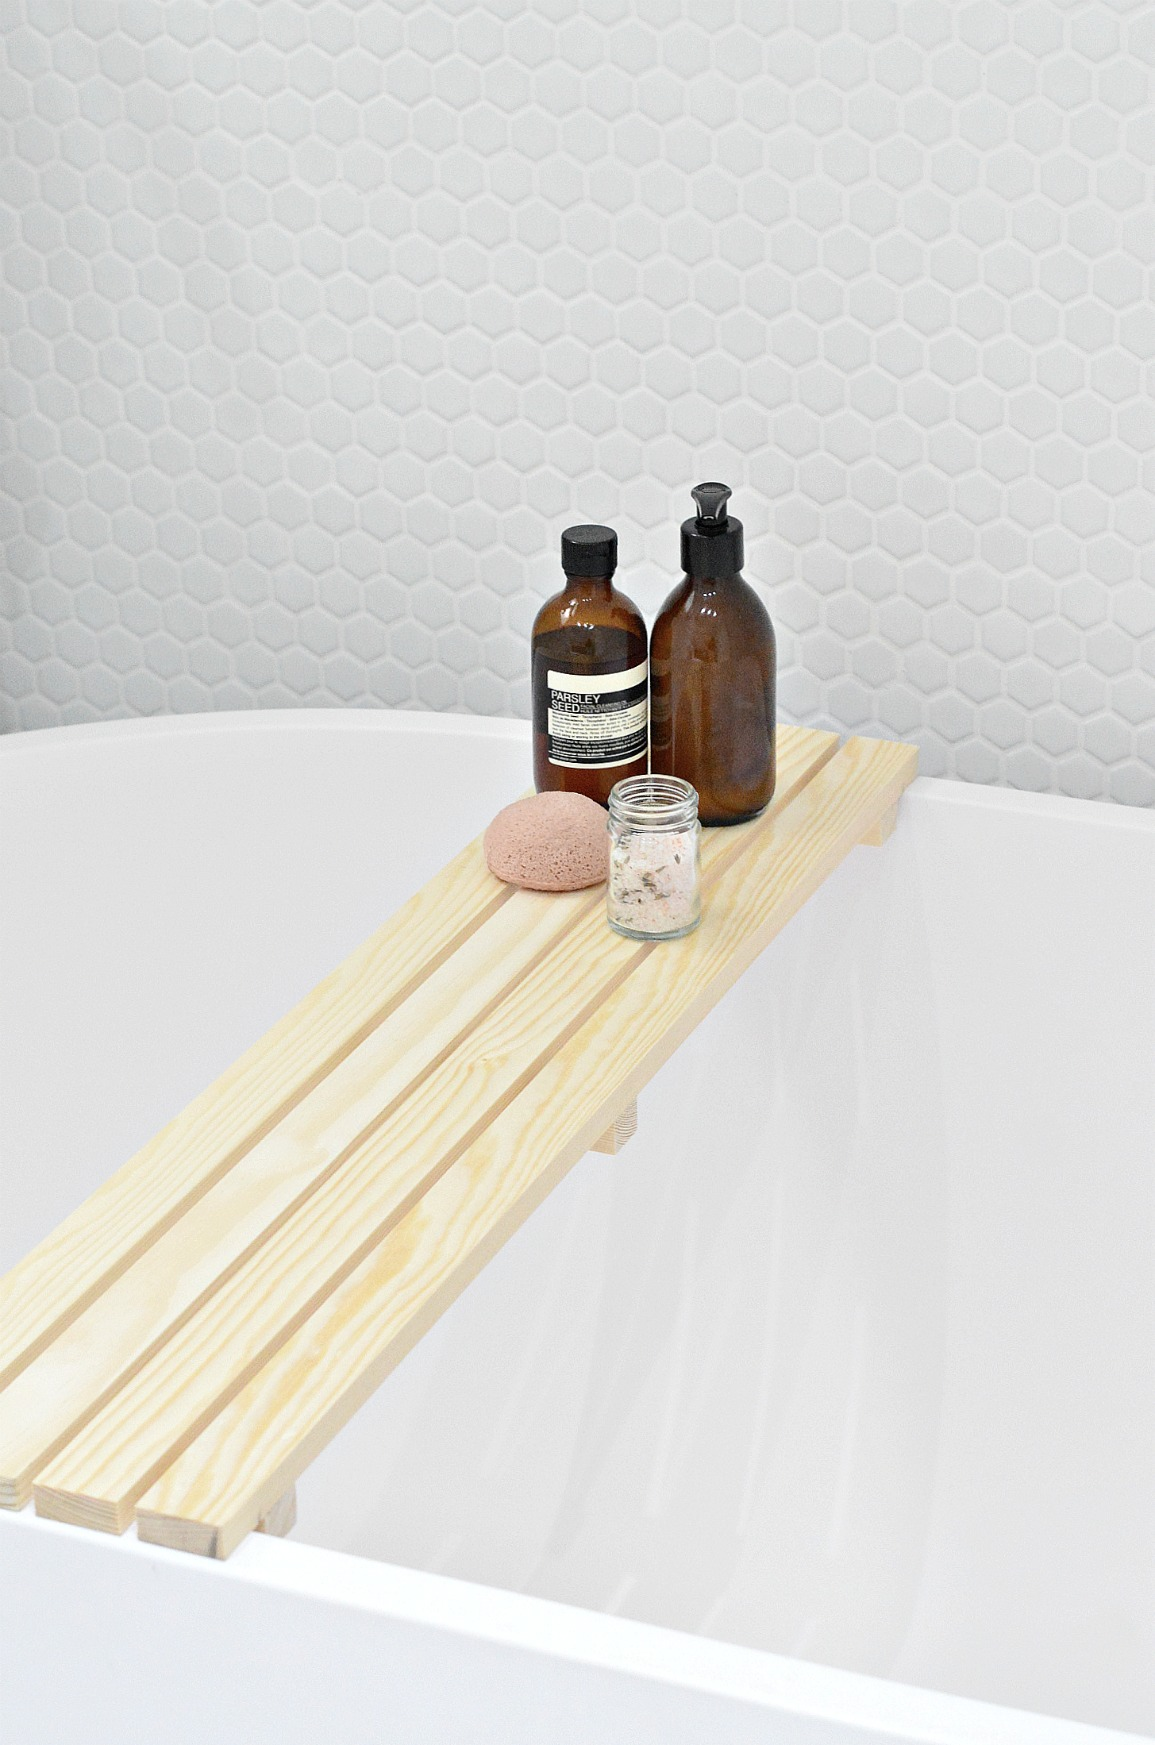 diy wood bath tray to keep all your bathing essentials easily reachable